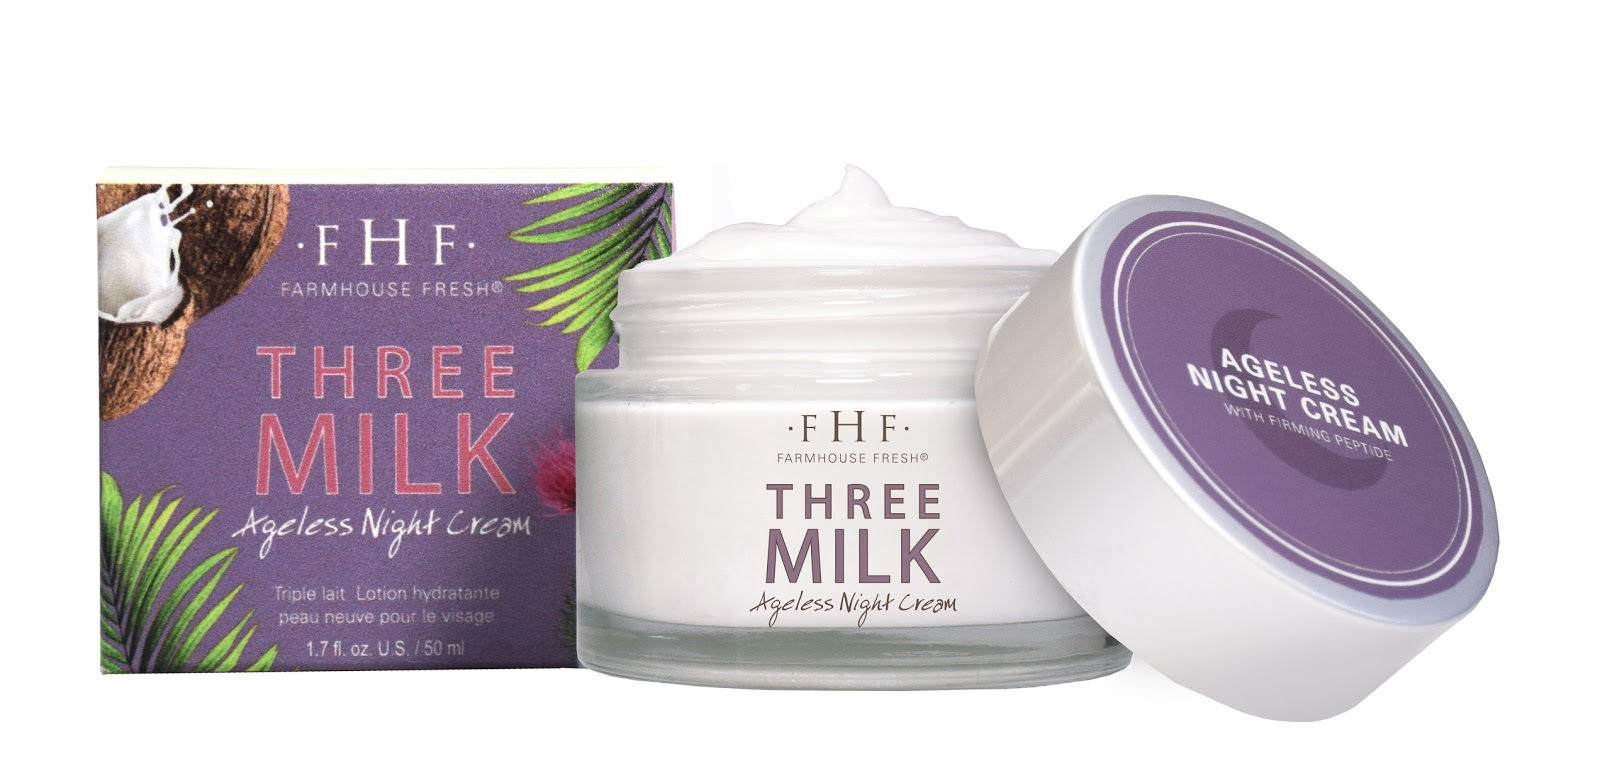 Farmhouse Fresh Body Products Pammy Blogs Beauty New Face And Body Anti Aging Products From